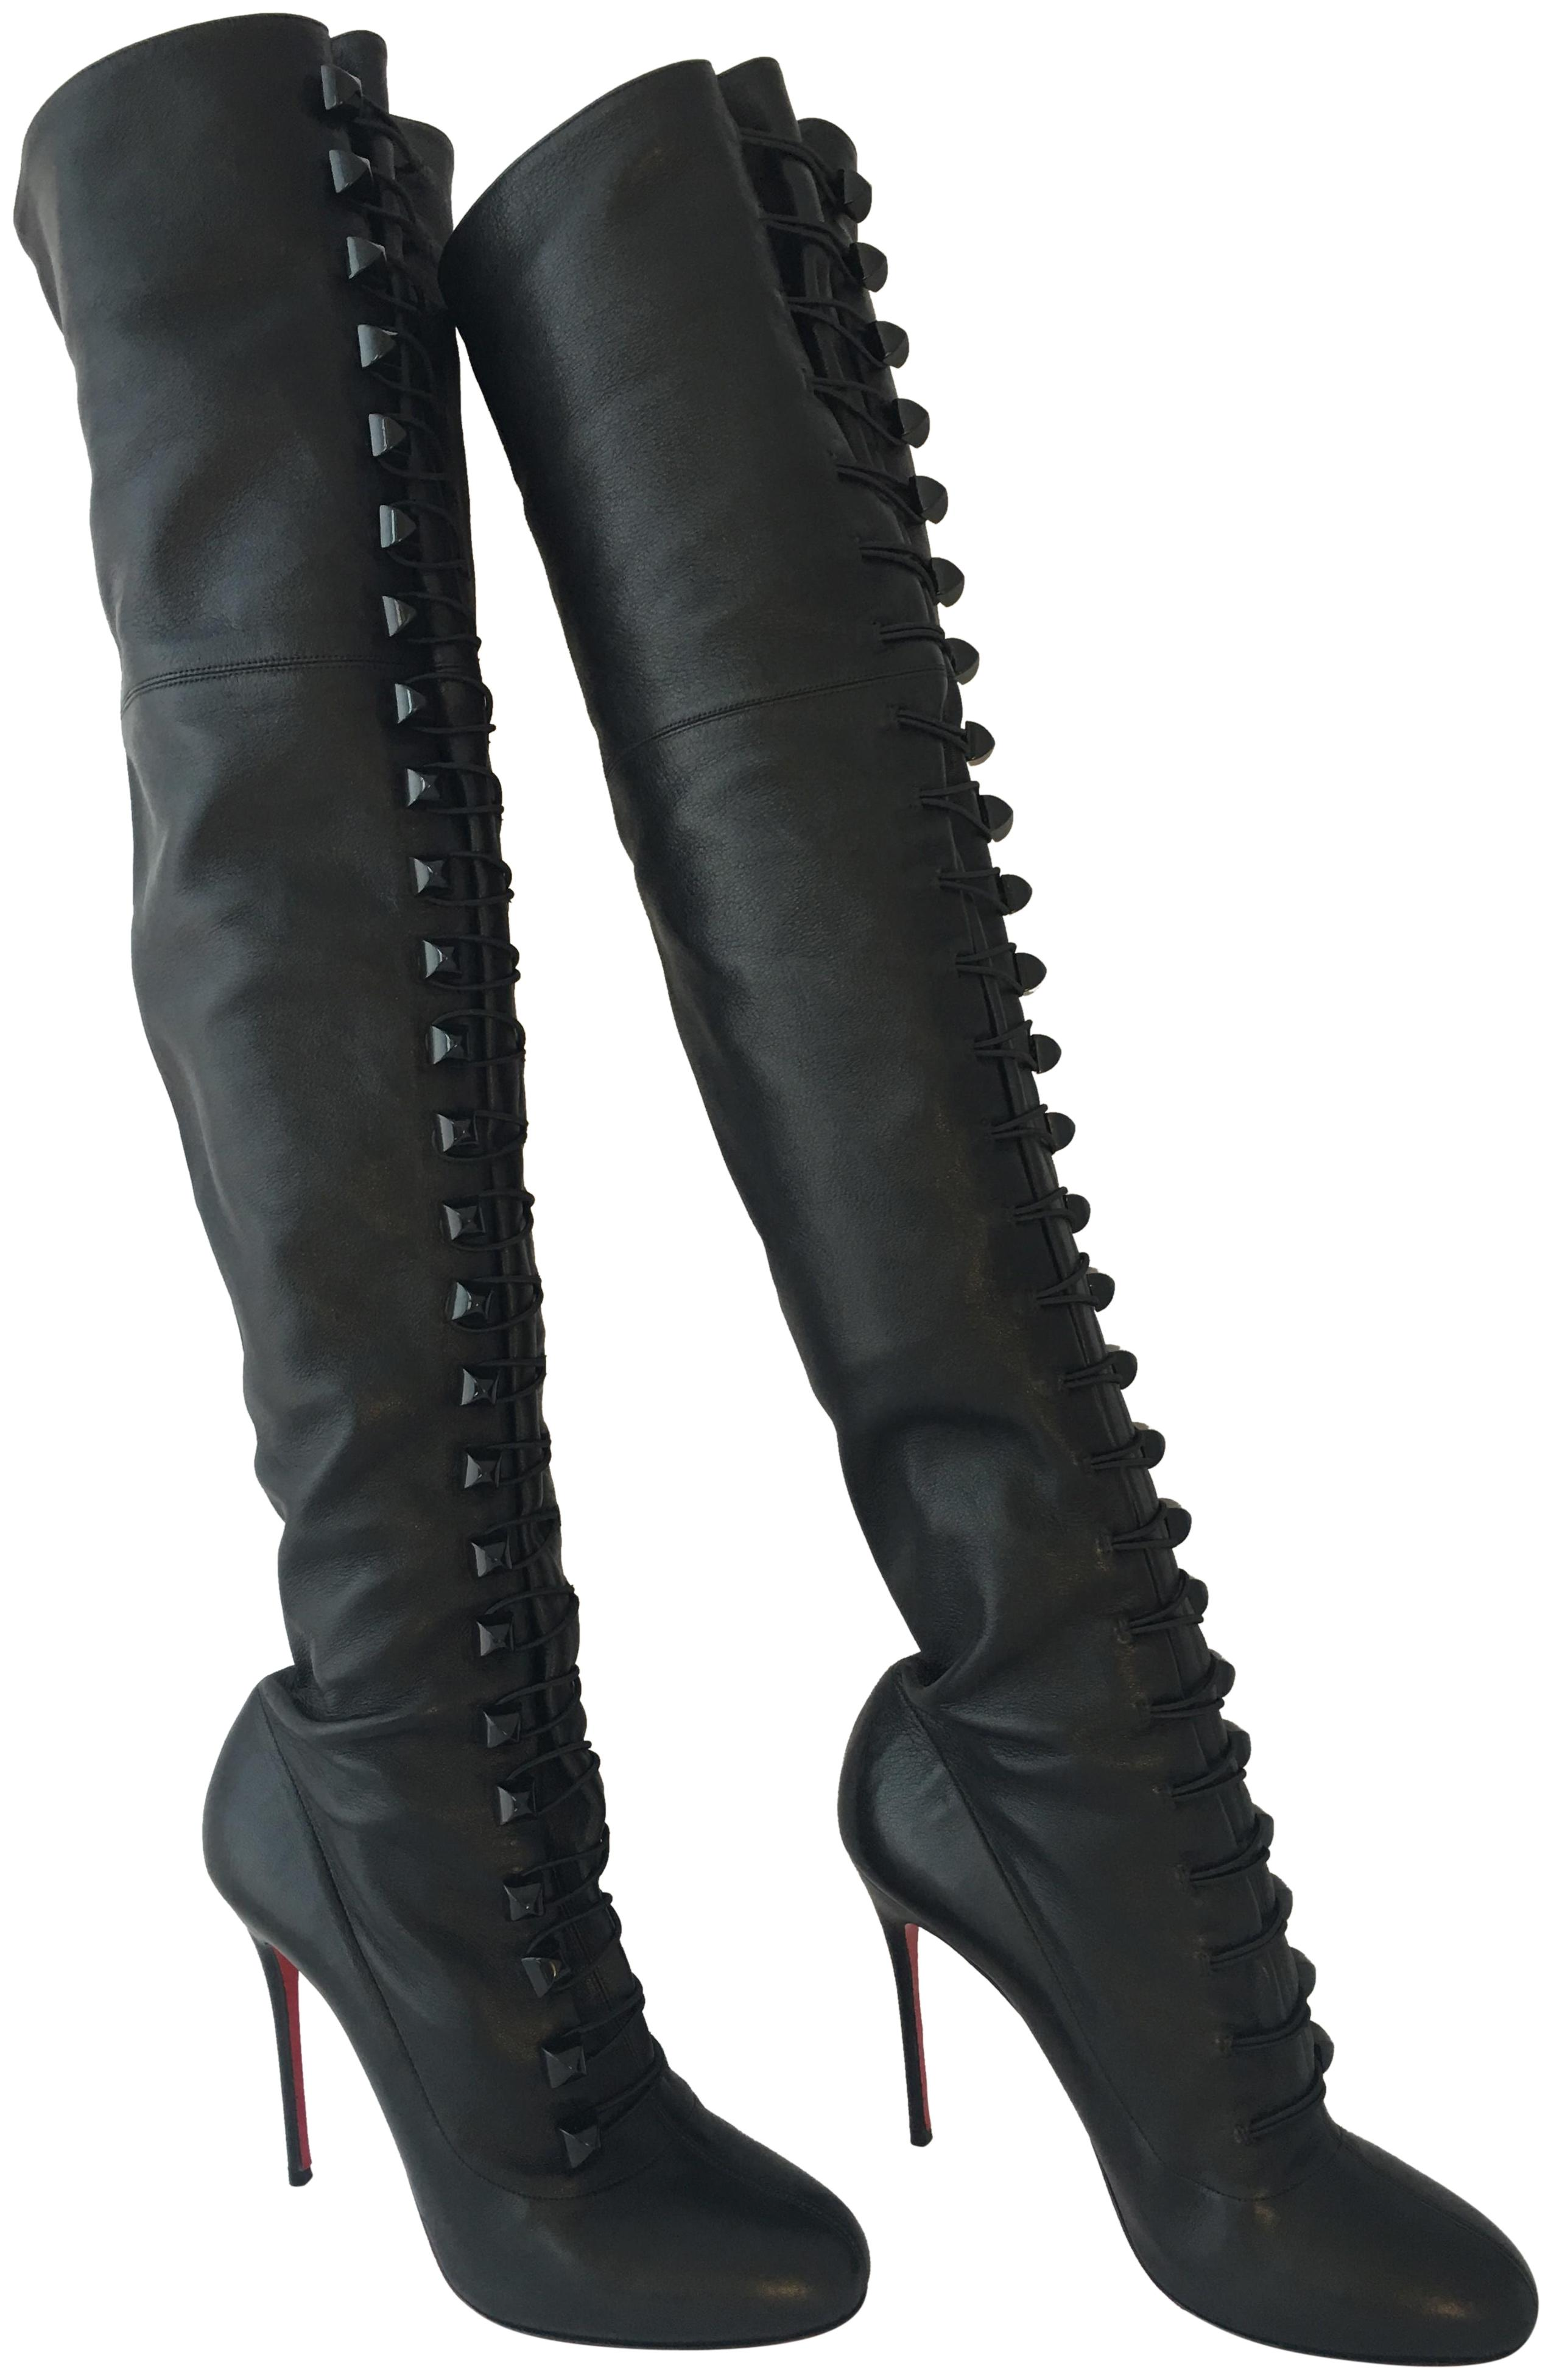 68e70e287e61 Christian Louboutin Black Ronfifi Supra 37.5 It It It Thigh High Over Knee  Heel Lady Daf Red Leather Boots Booties Size US 7.5 Regular (M